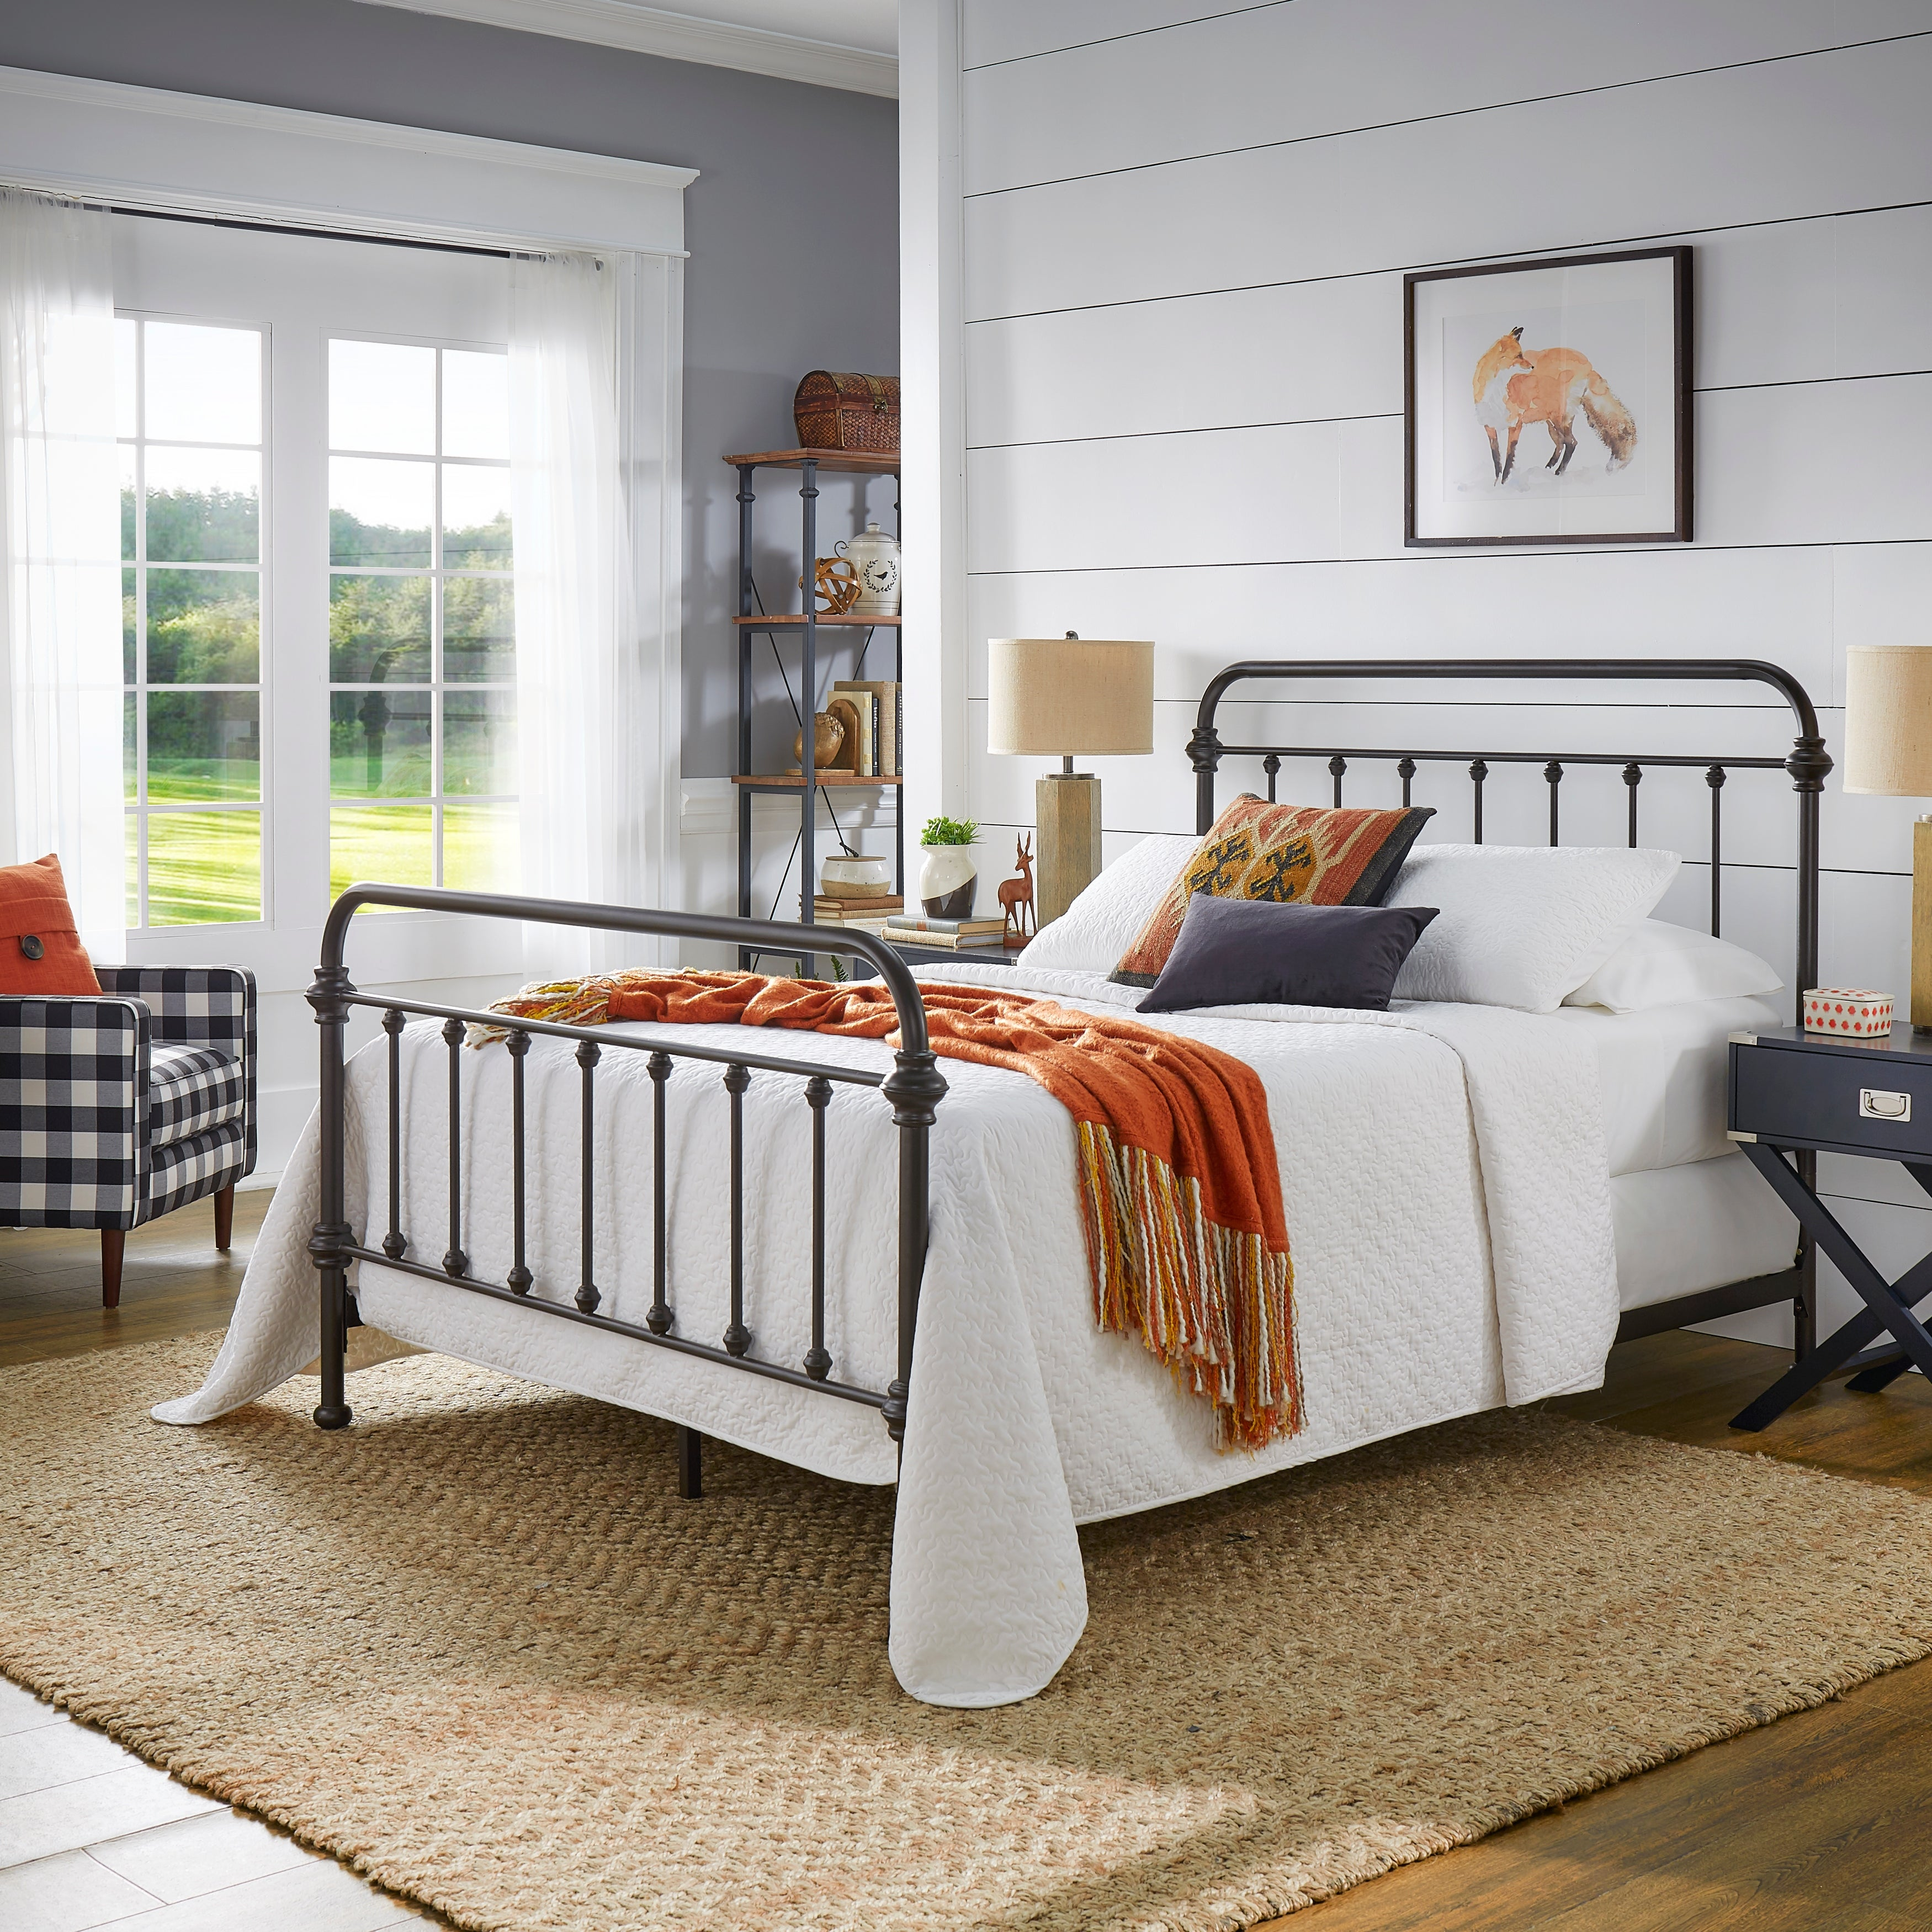 Picture of: Giselle Antique Graceful Dark Bronze Victorian Iron Bed By Inspire Q Classic On Sale Overstock 7720291